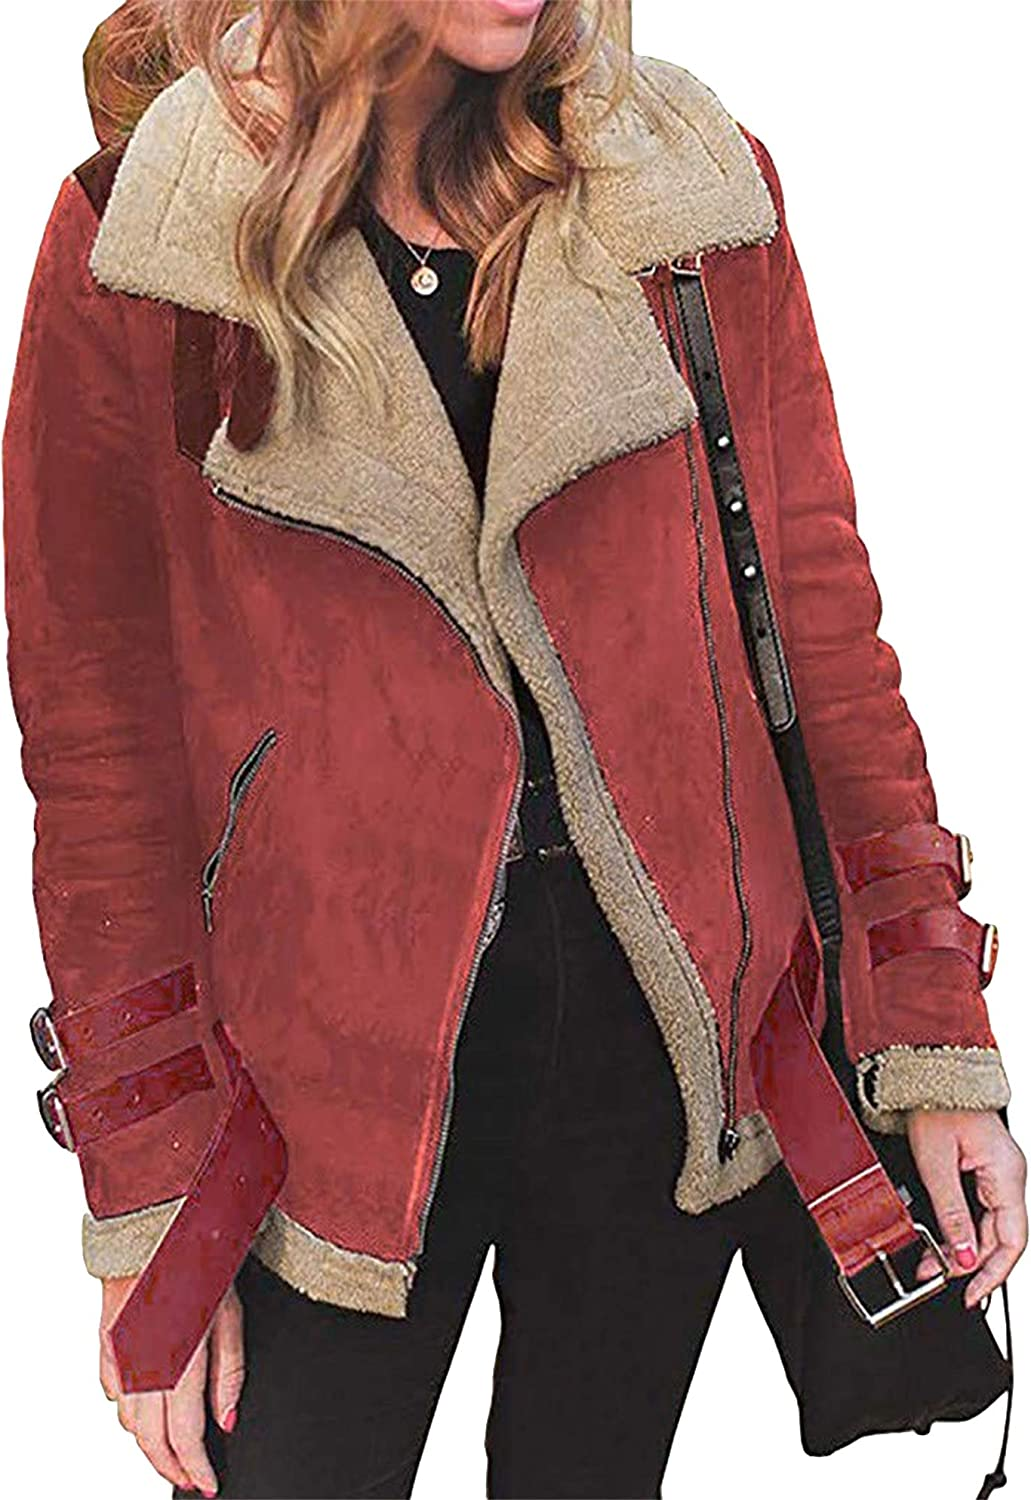 ZICUE Womens Lapel Faux Suede Leather Jackets Open Front Zip Up Biker Jacket with Pockets